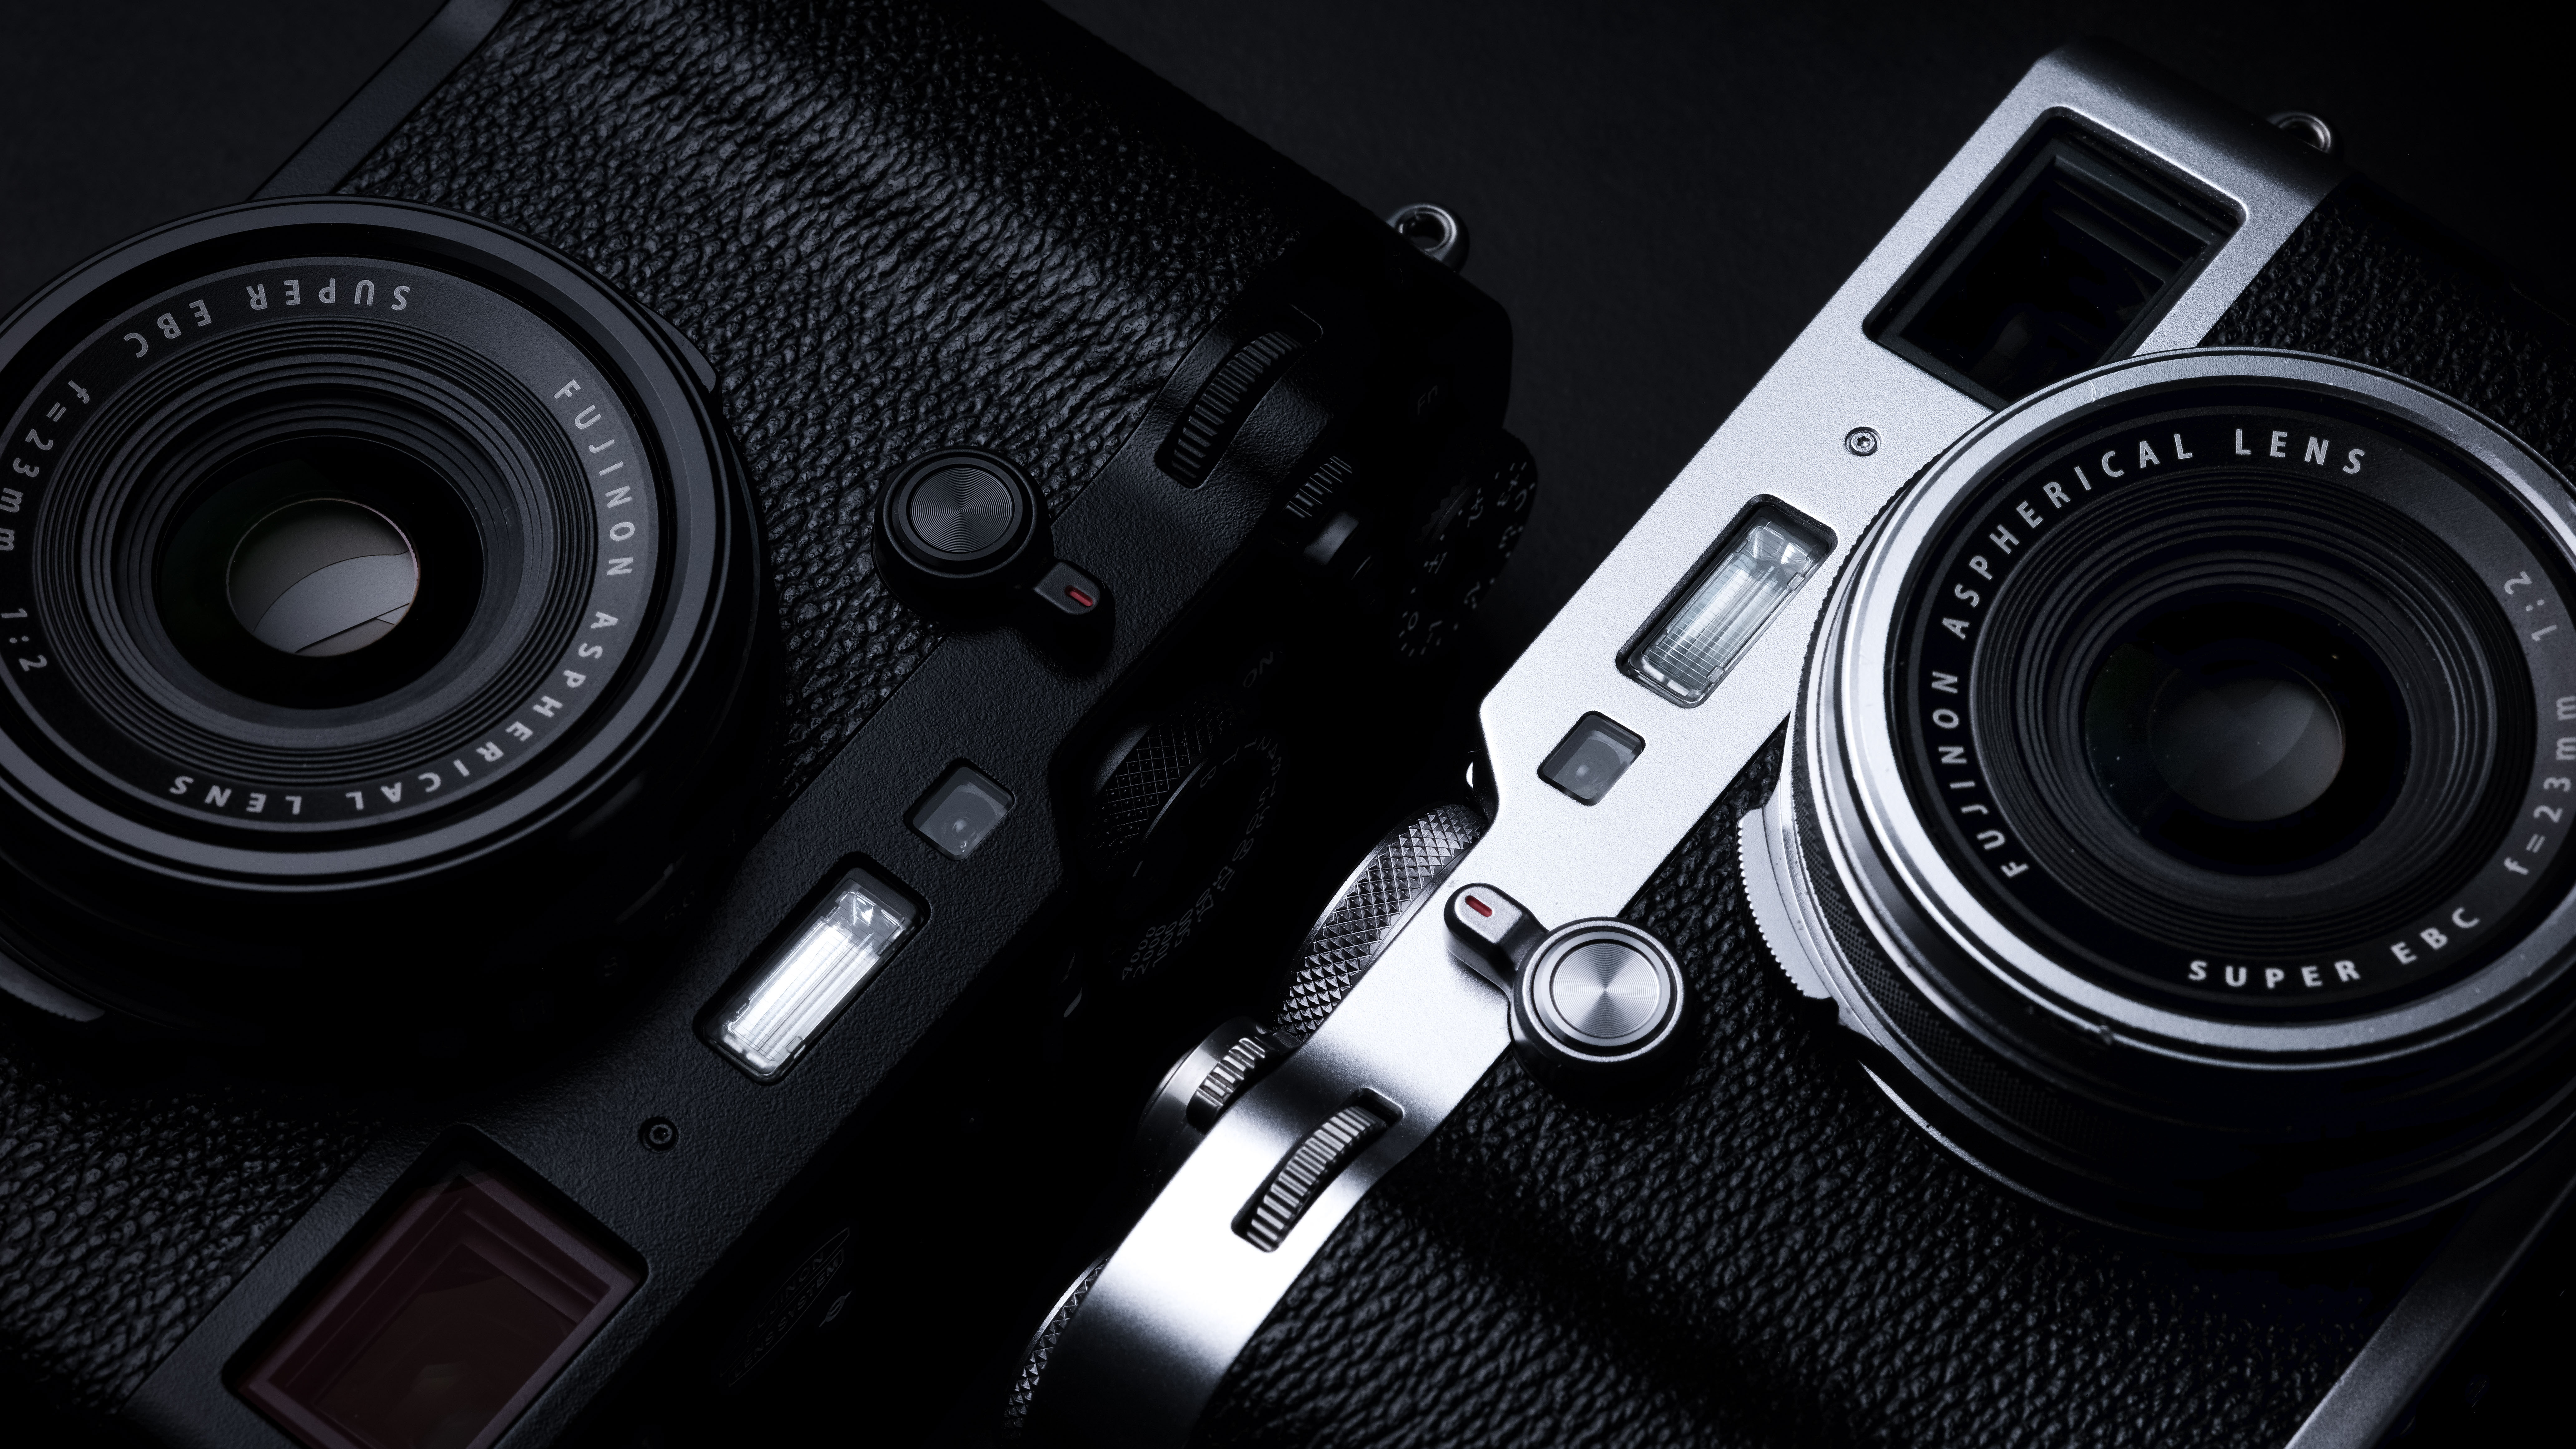 Best Compact Camera 2018 10 Top Cameras To Suit All Abilities Techradar